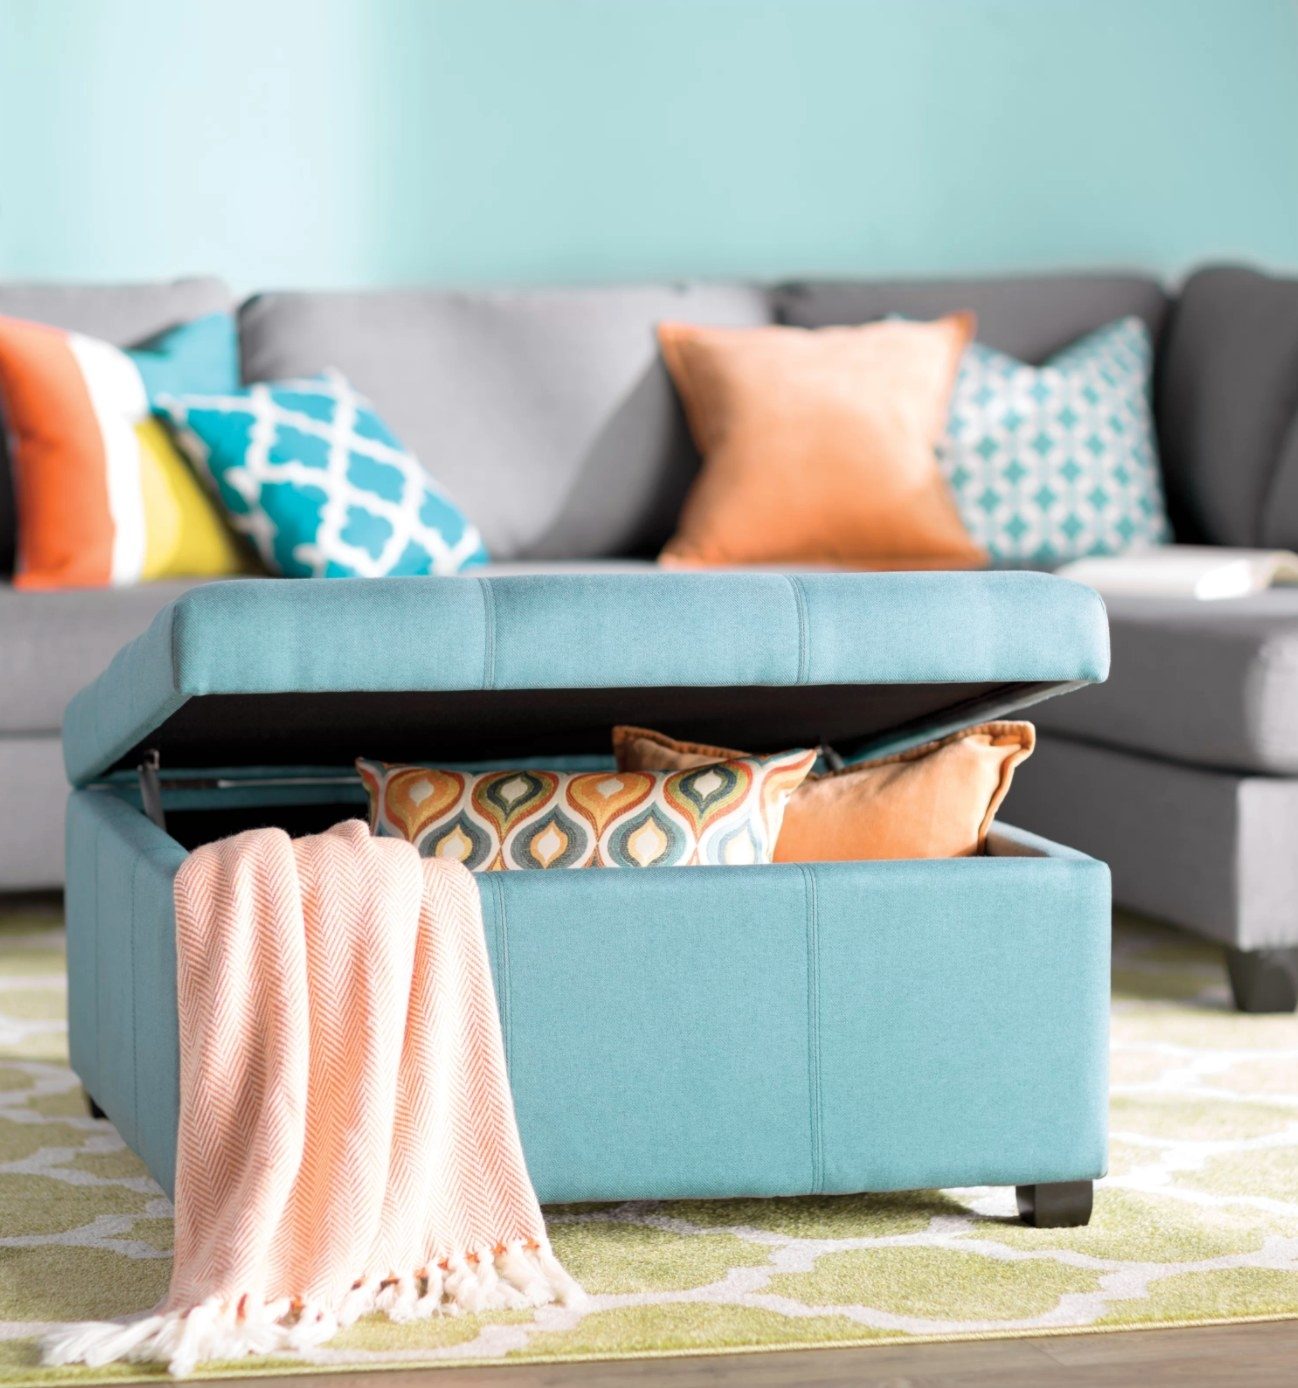 The tufted ottoman in dark teal